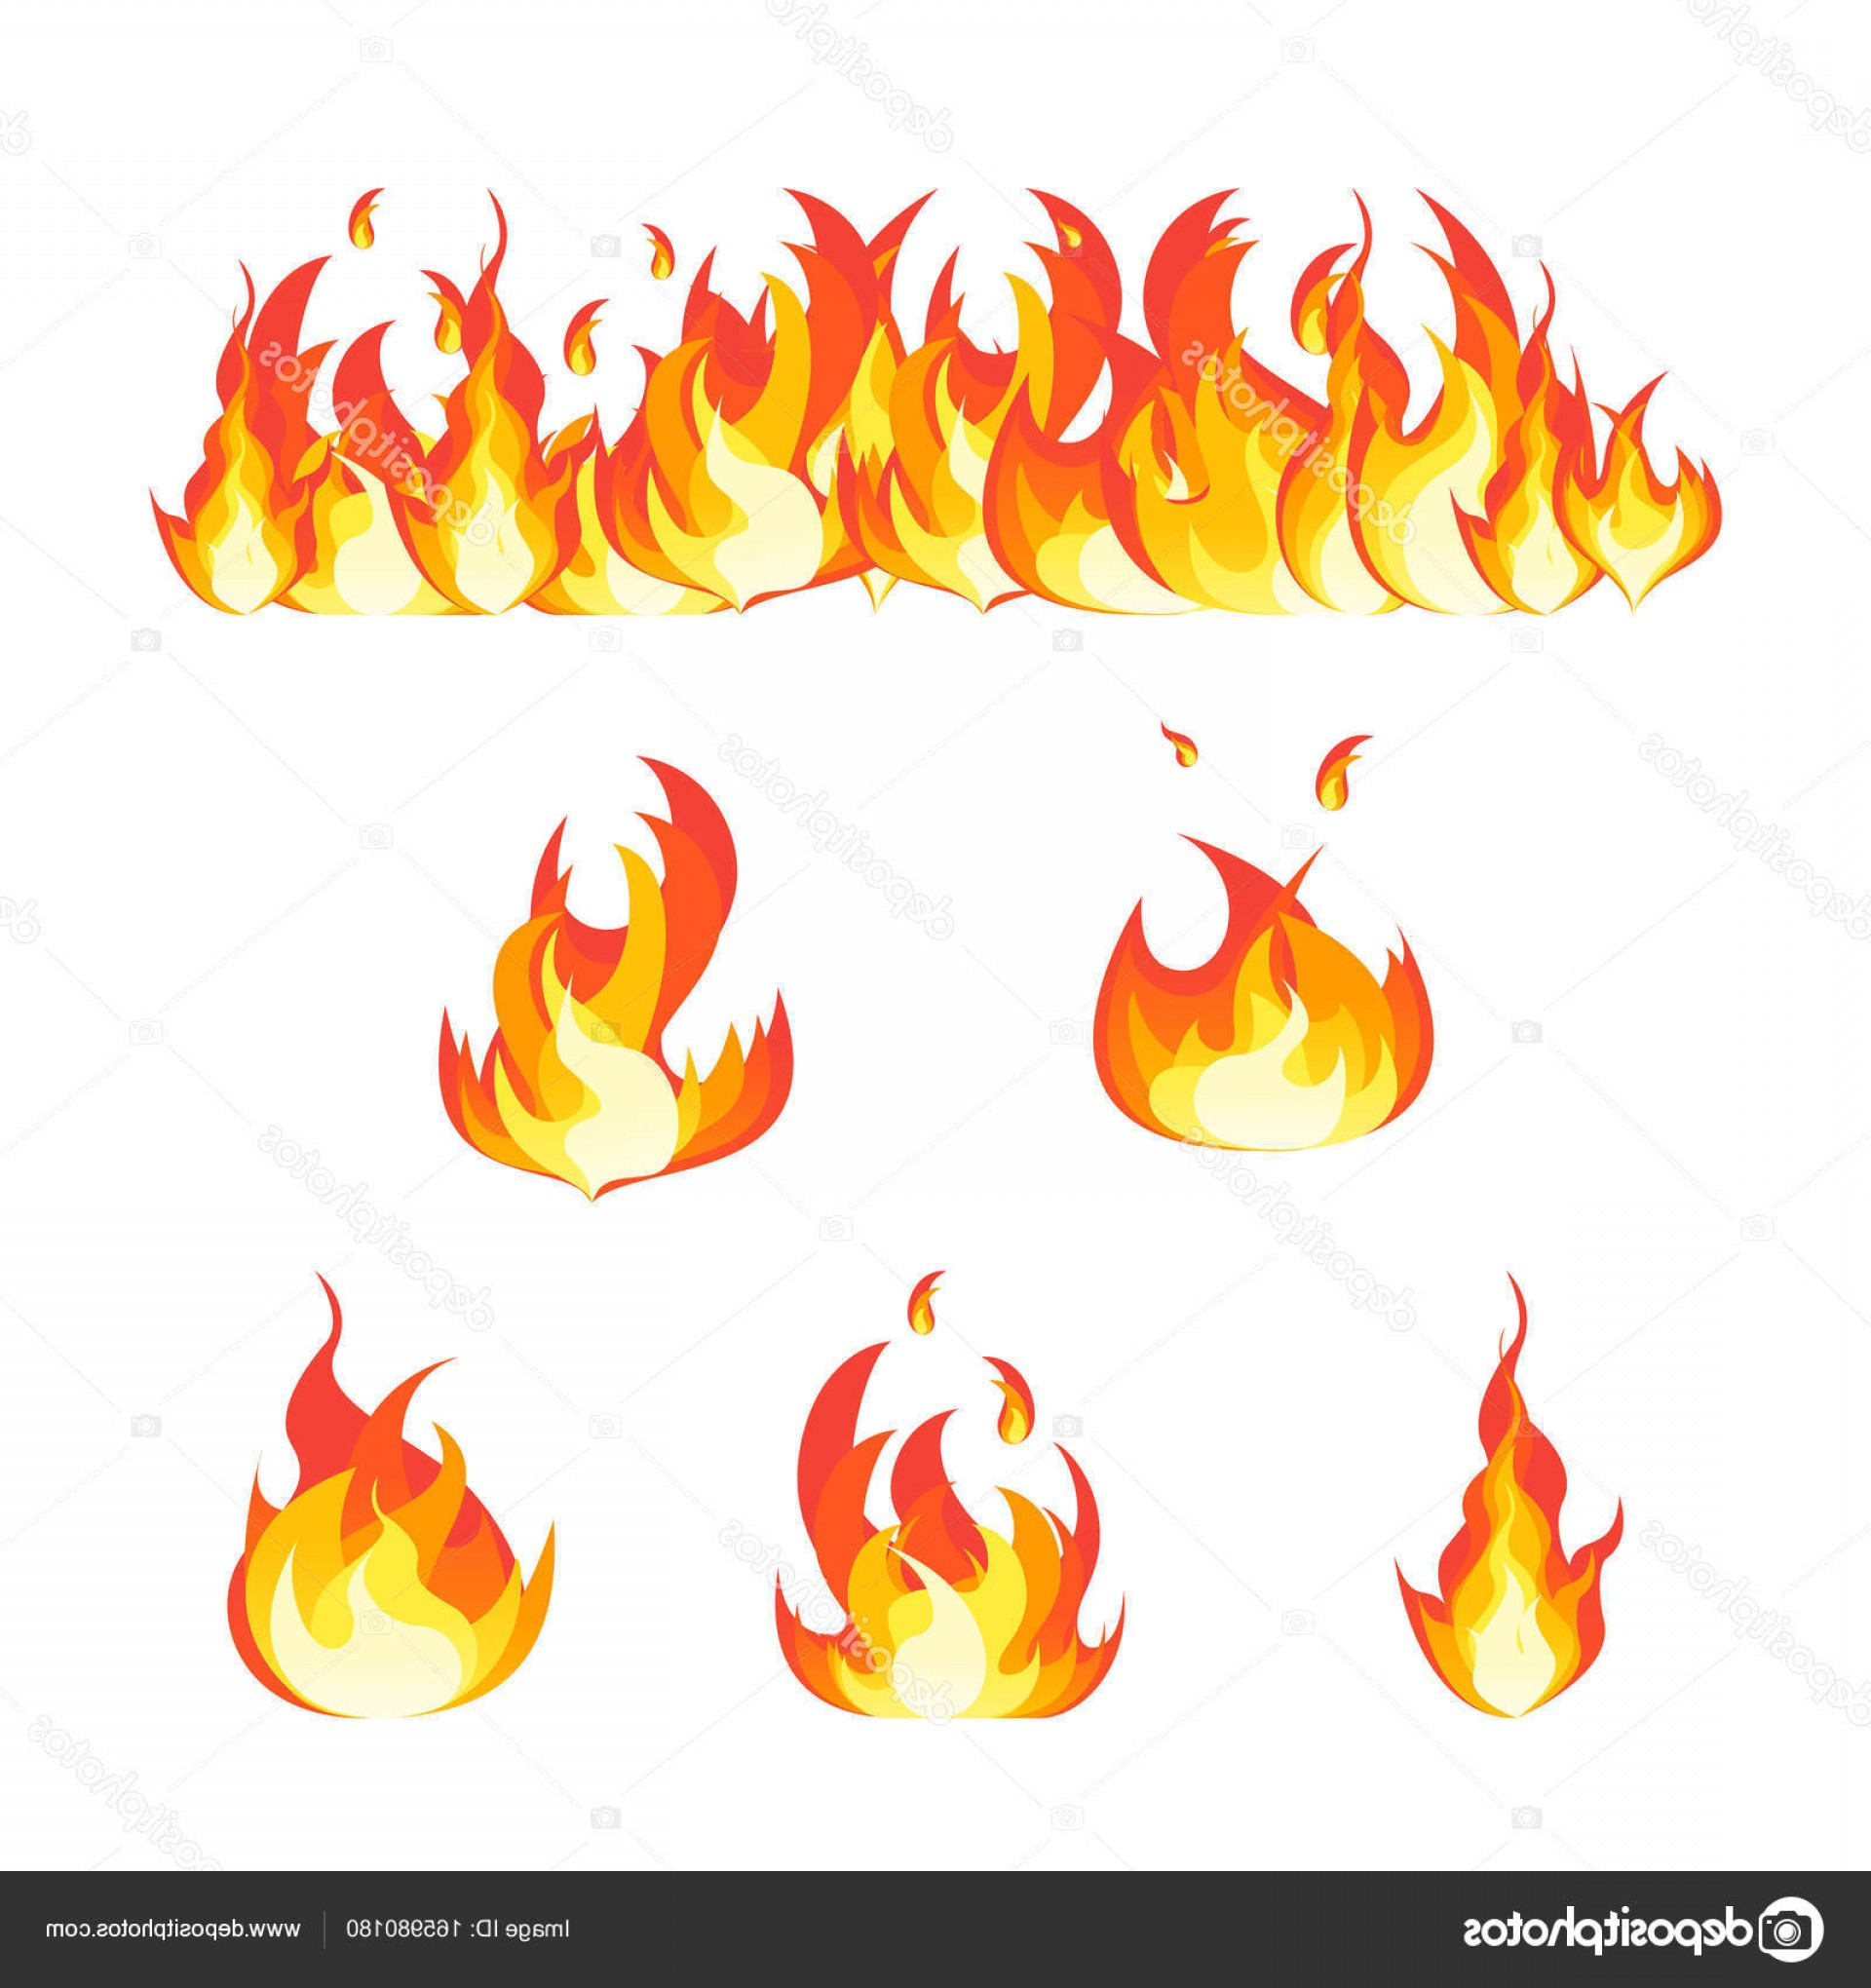 Fire Clip Art Vector: Stock Illustration Cartoon Fire Flames Set And